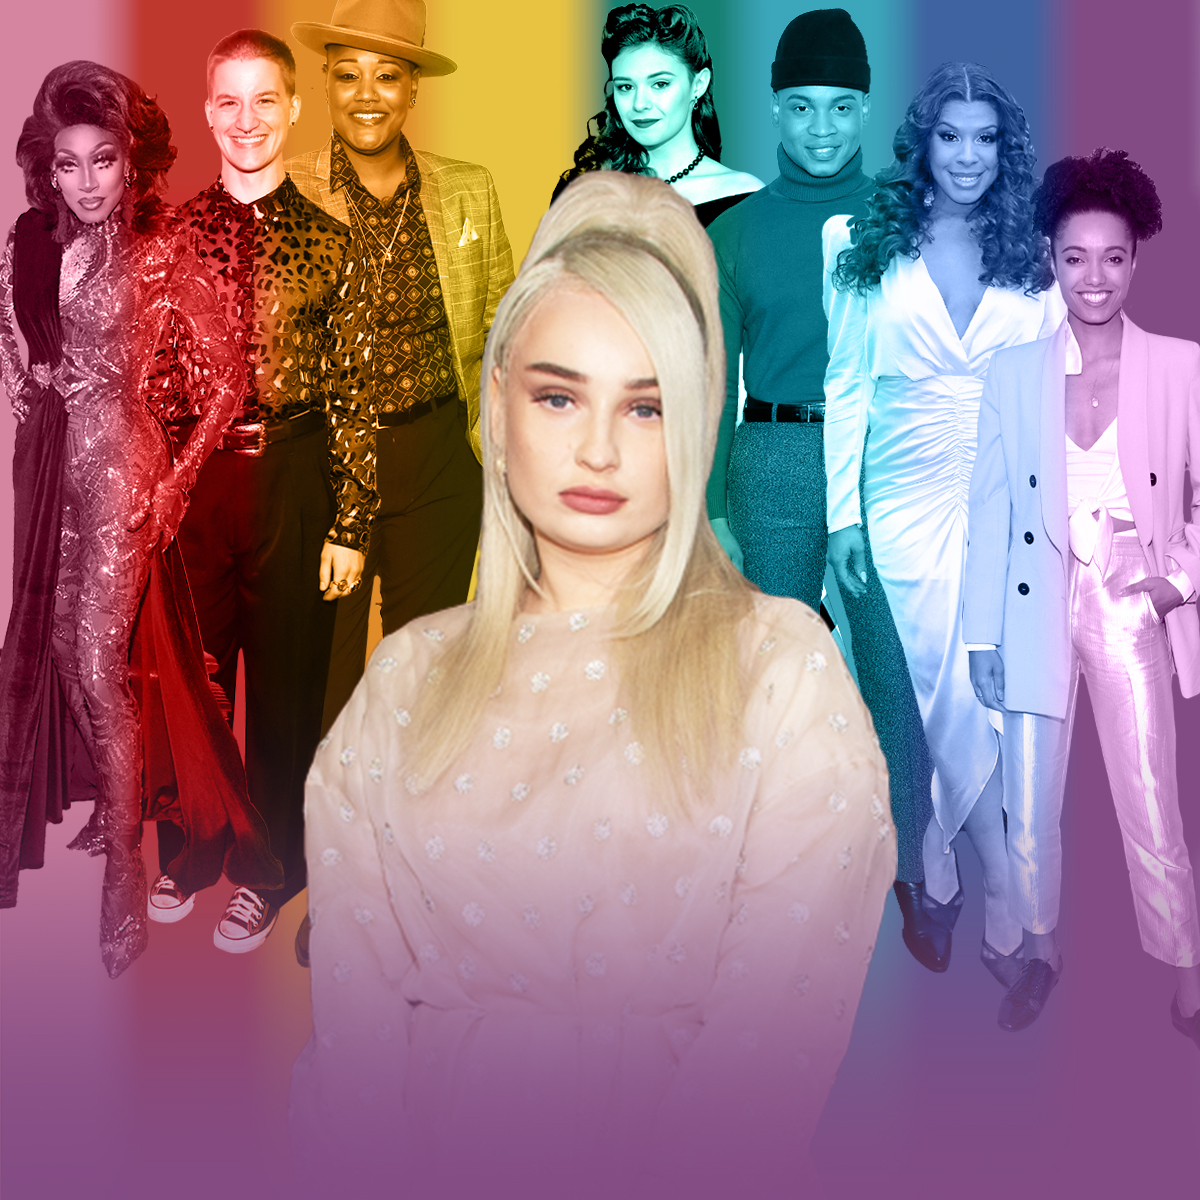 The New Faces of Pride: Kim Petras on Meeting Madonna, the Importance of Intersectionality and More - E! Online